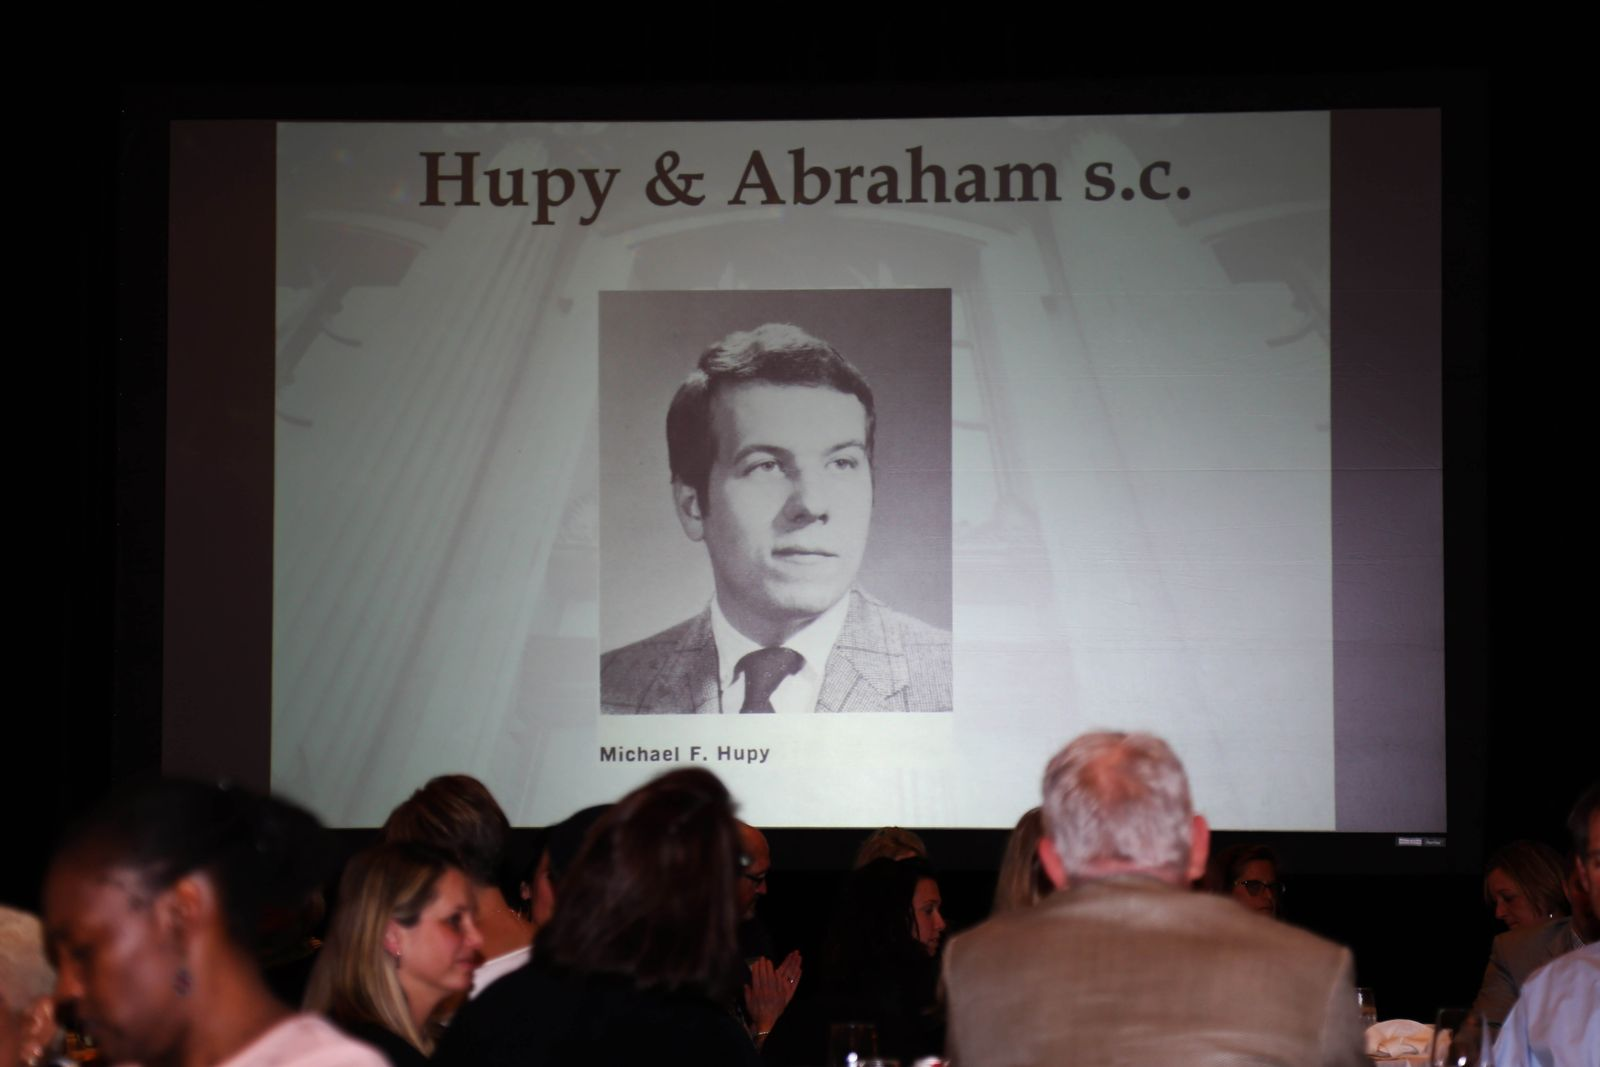 Attorney Michael Hupy's photo is displayed.